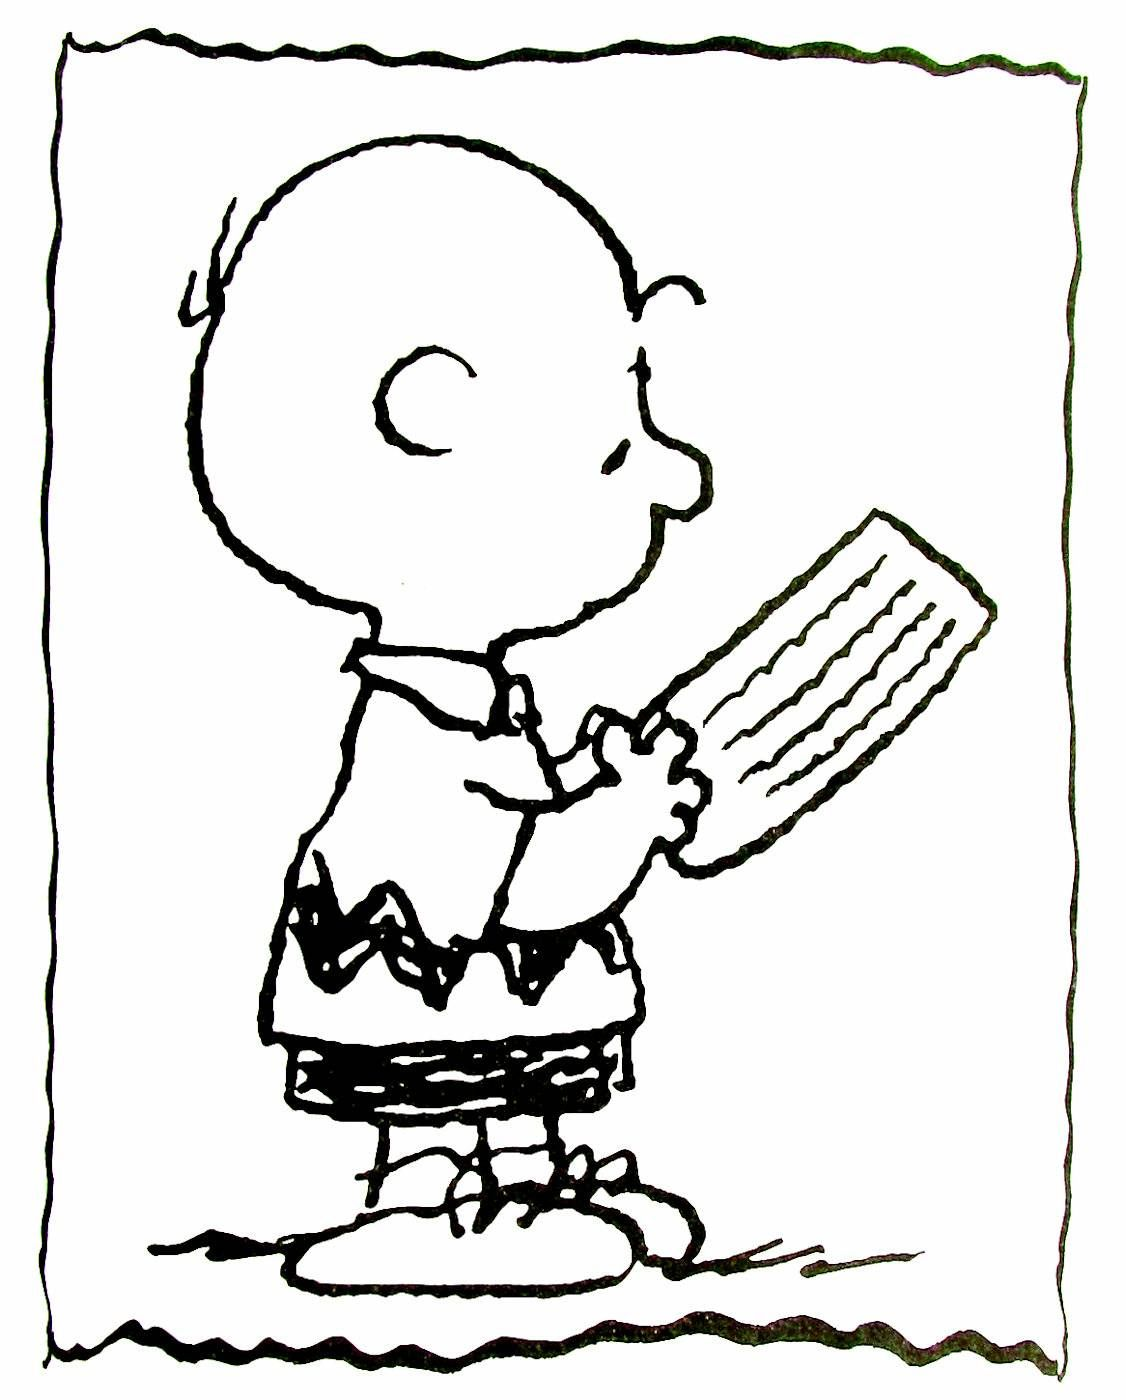 Charlie Brown coloring book page